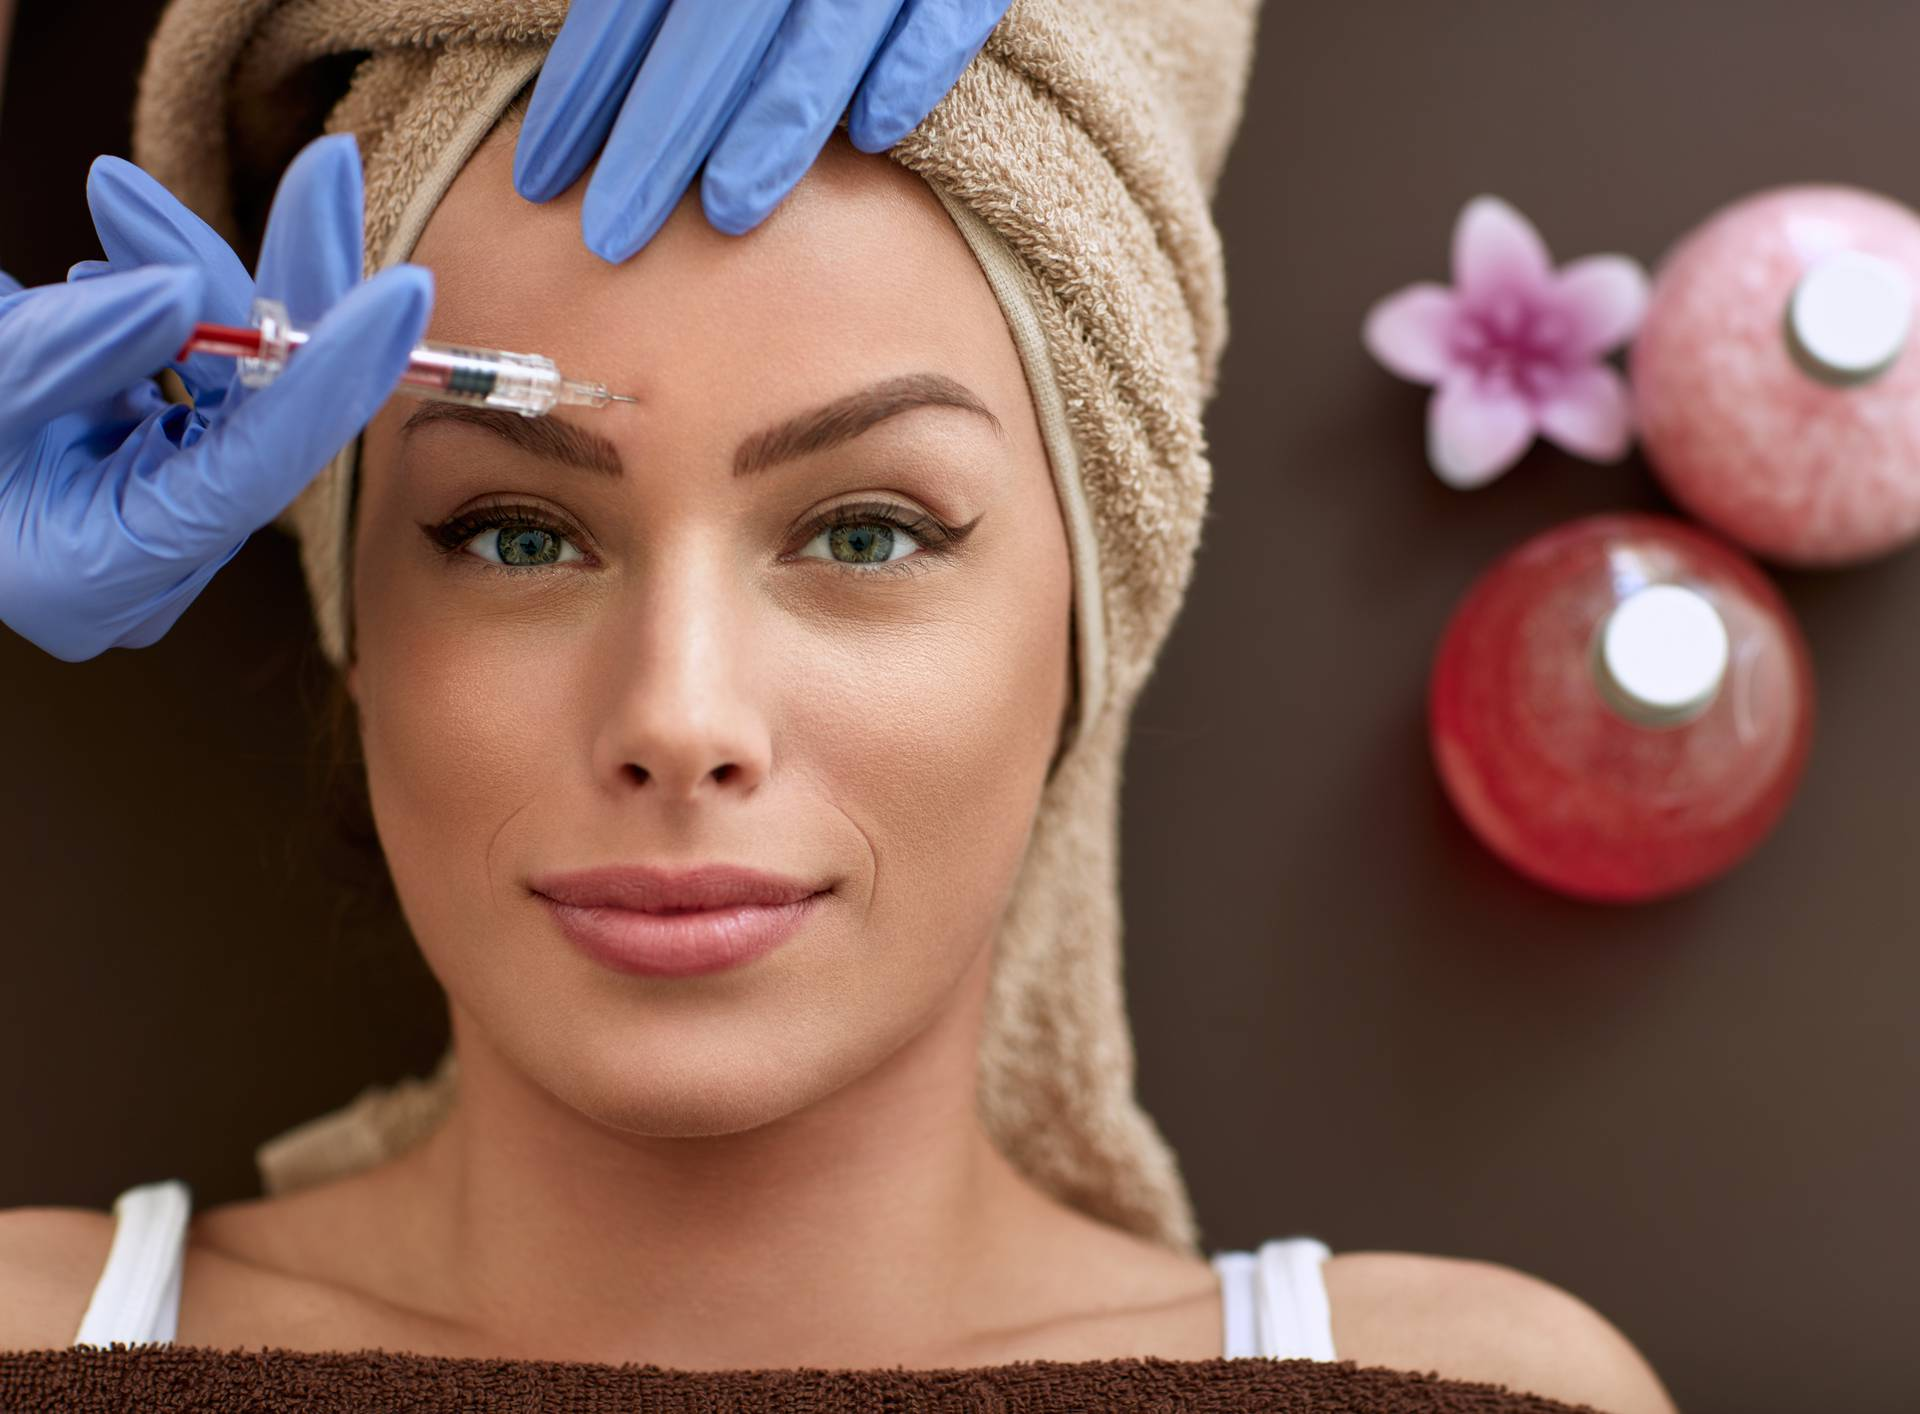 Beautiful woman receiving botox injections